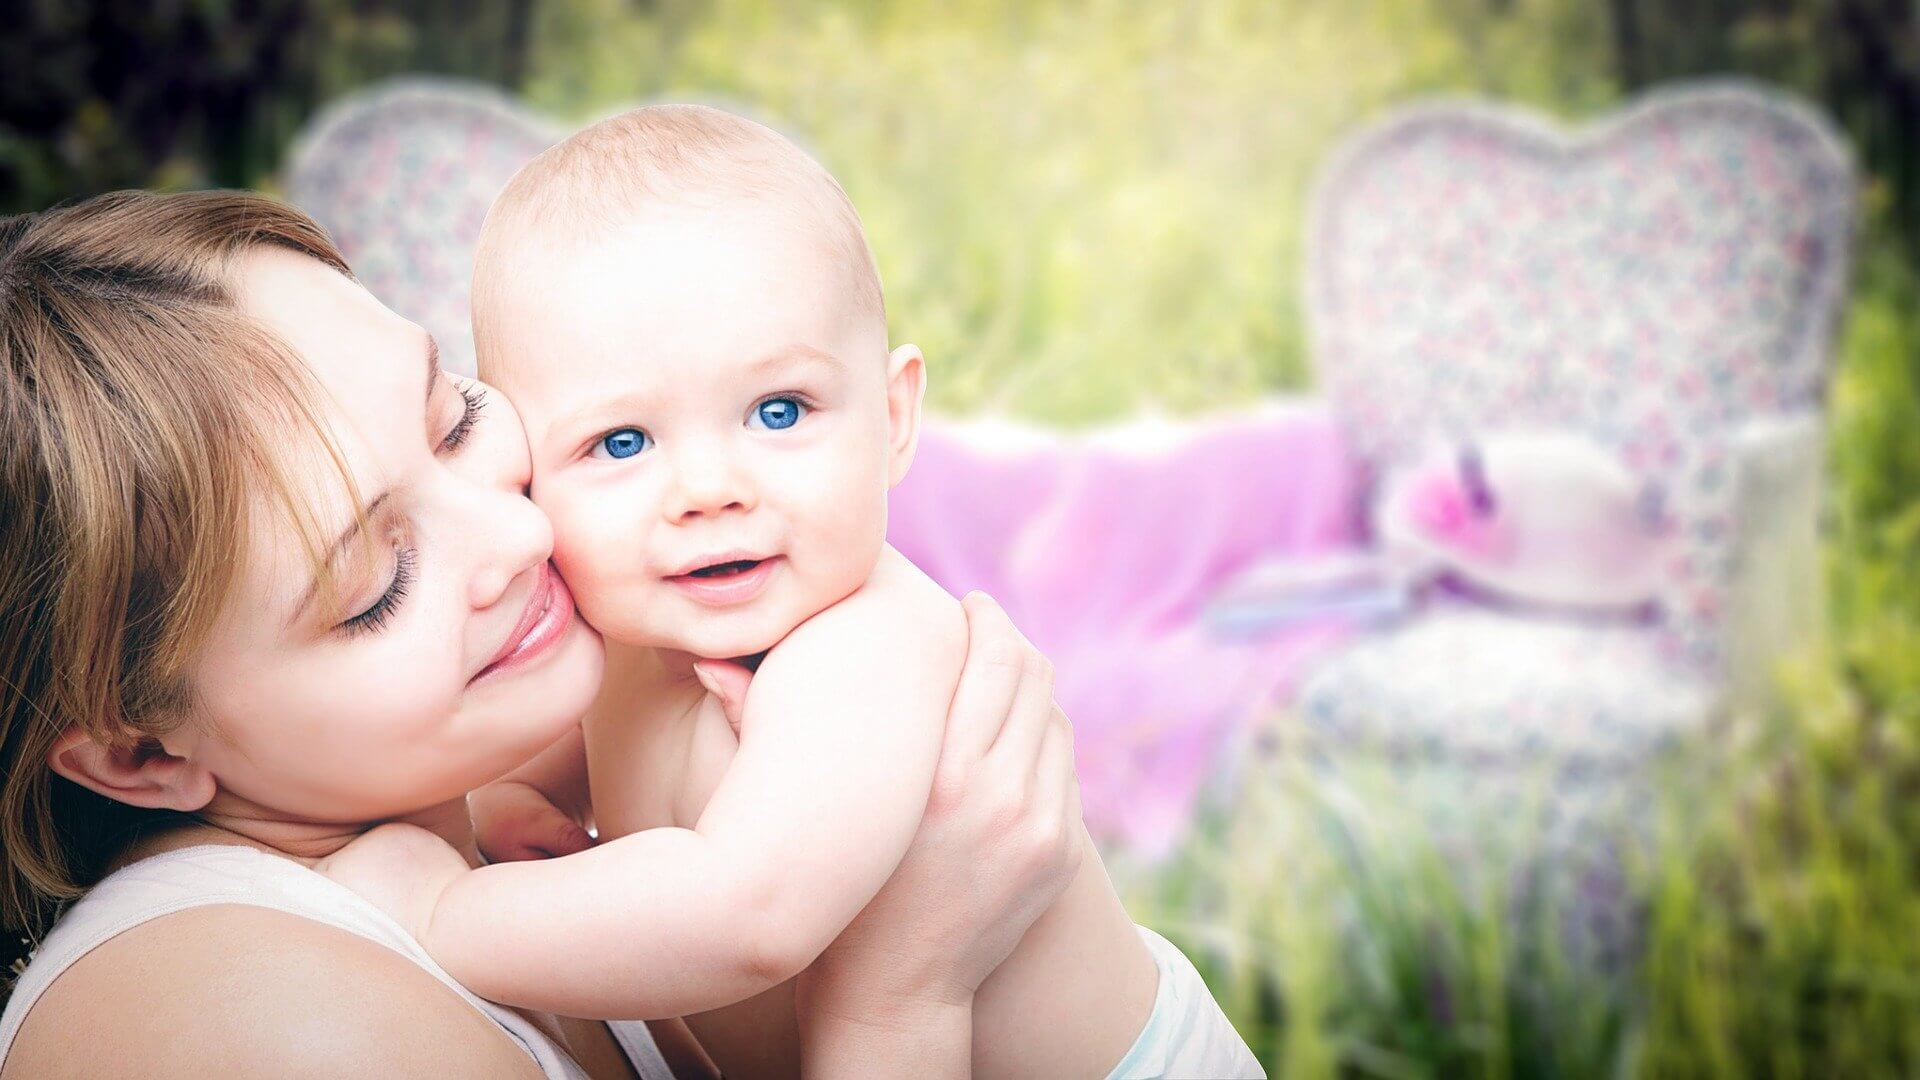 How to Get Custody of a Child Without Going to Court?